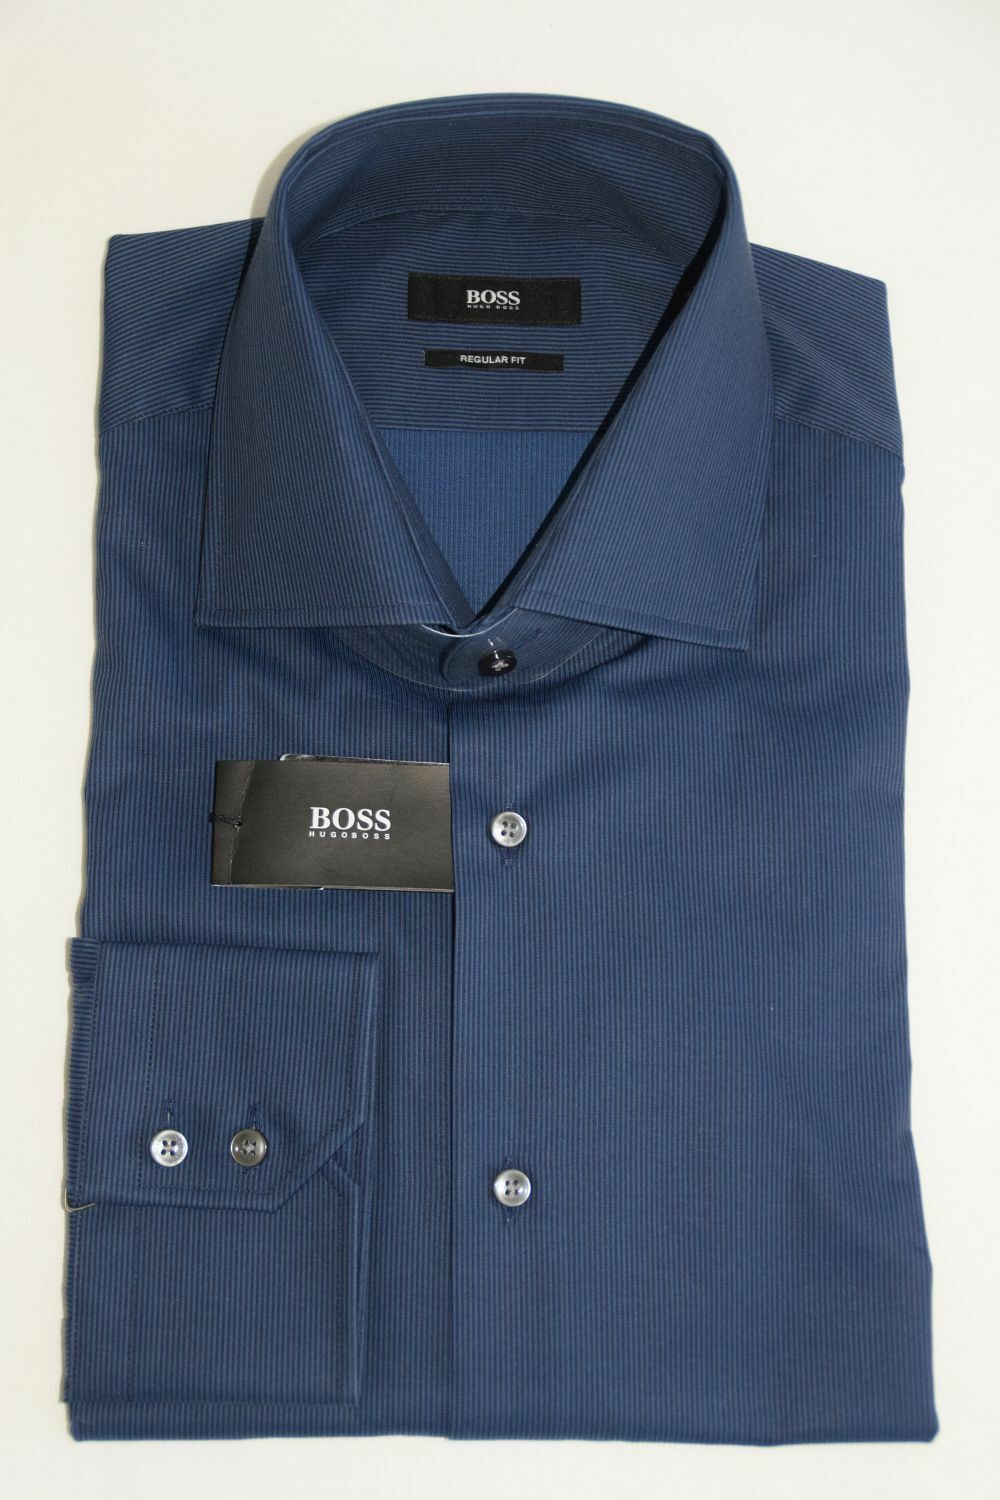 HUGO BOSS BUSINESSHEMD, Mod. Gerald, Gr. 41, Regular Fit, Bright Blau